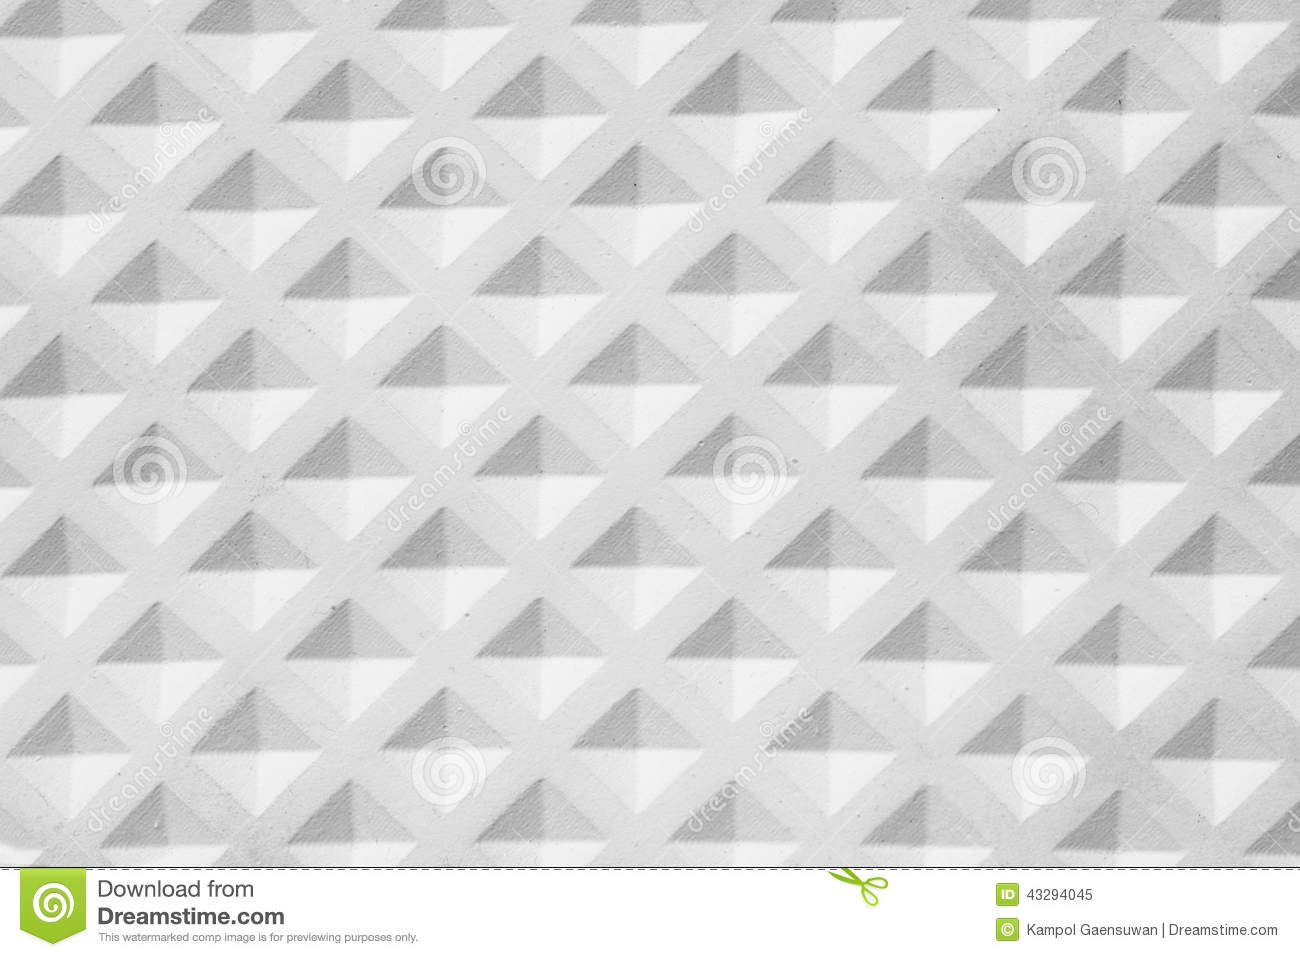 Texture Of White Square Tile Rubber Stock Photo   Image  43294045